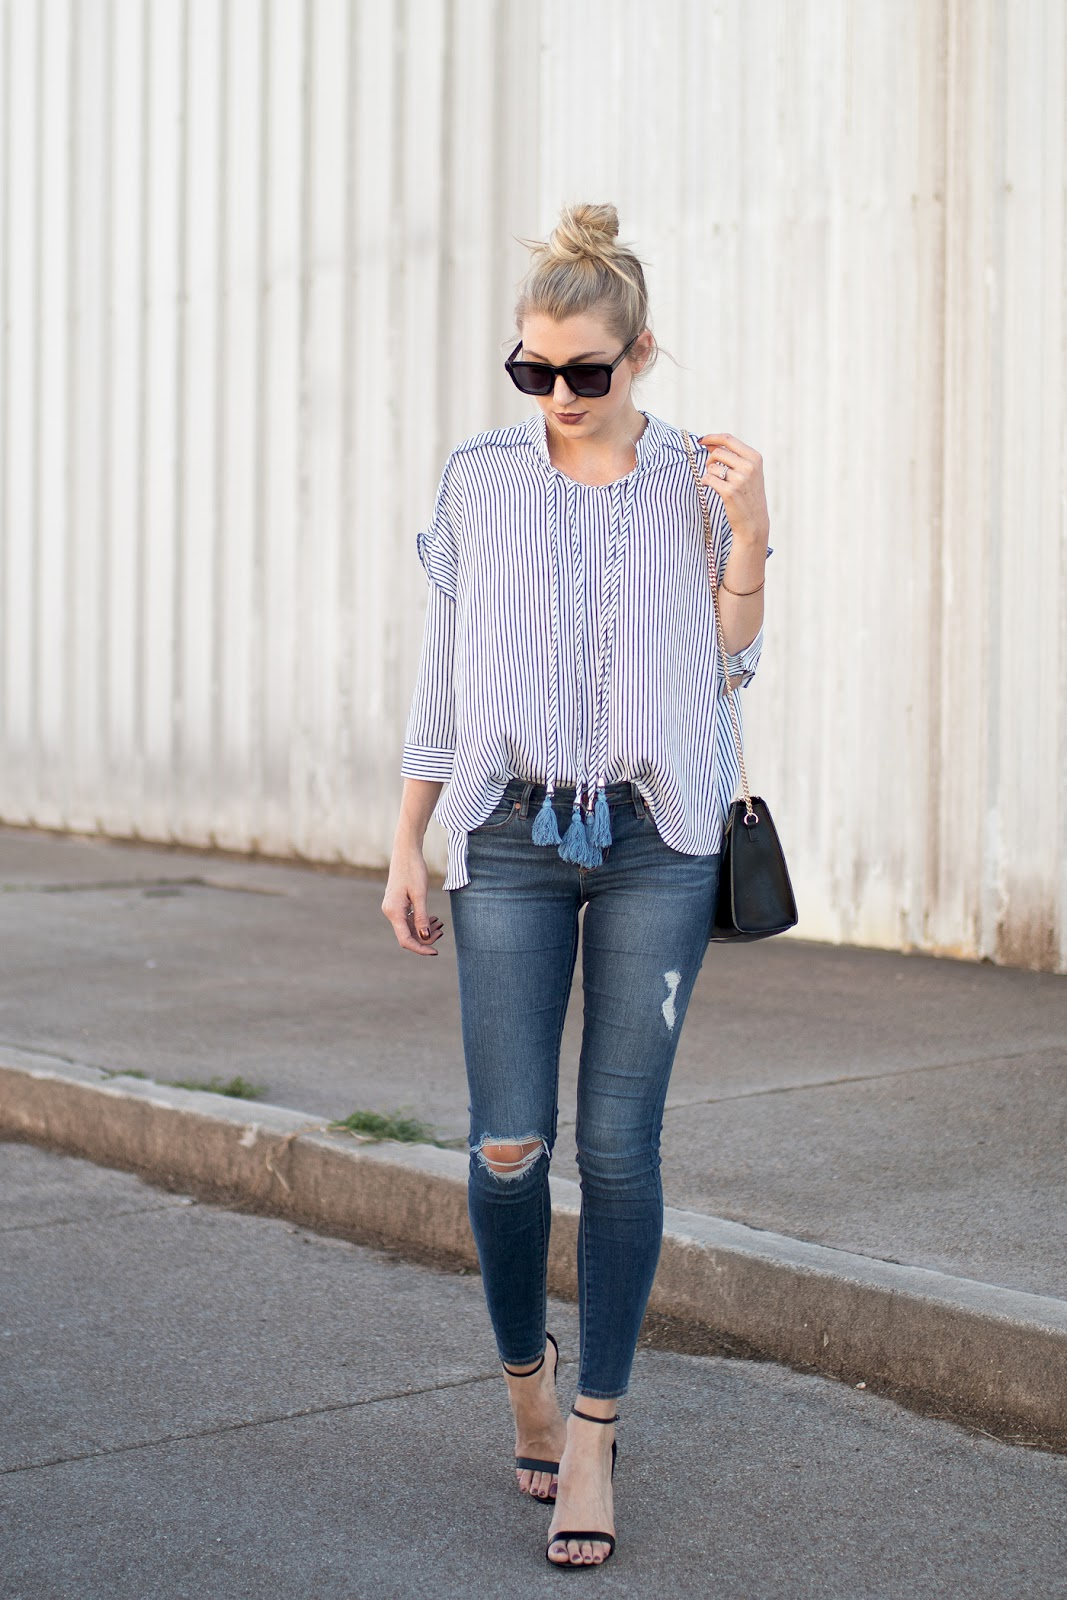 Stripe top with distresed skinny jeans